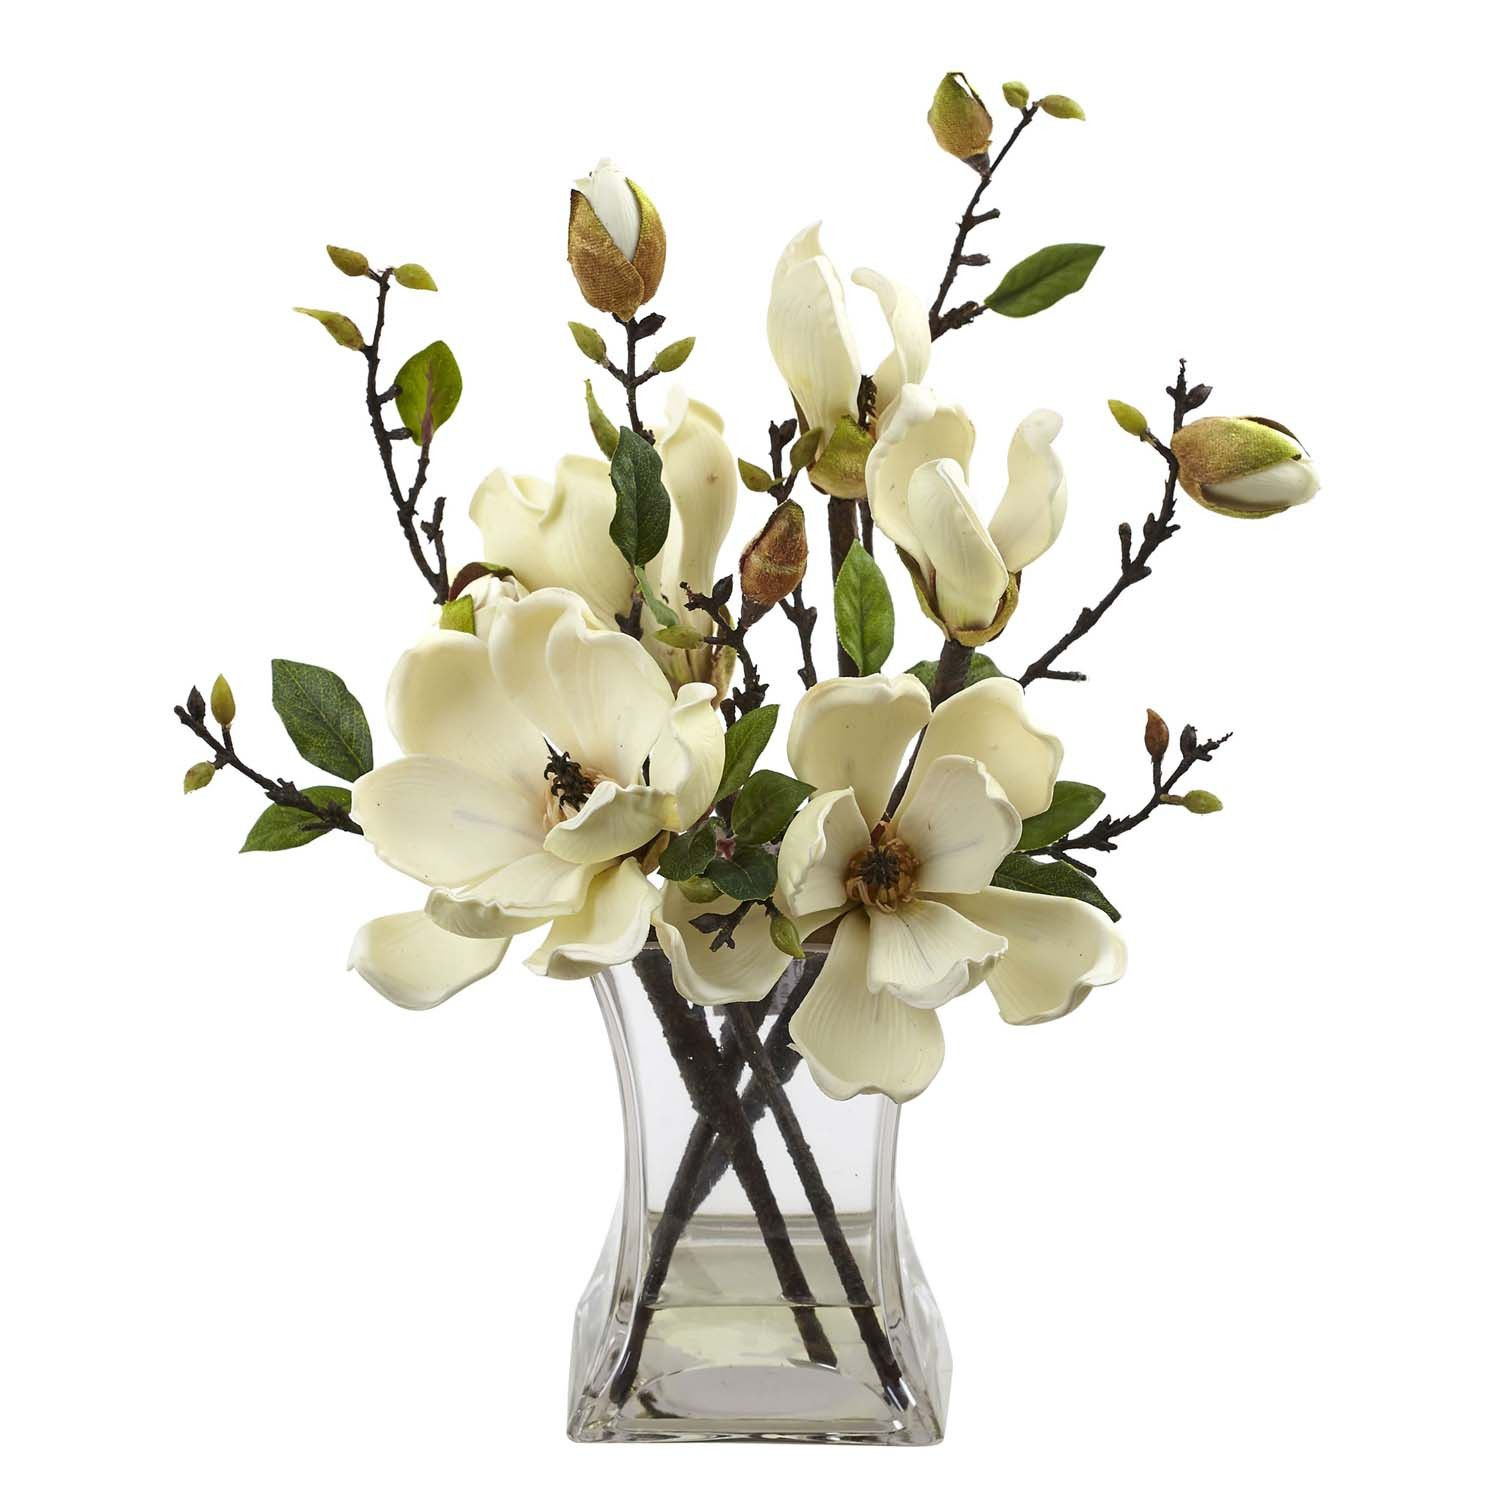 Magnolia Flower Arrangement Floral Arrangements Pinterest